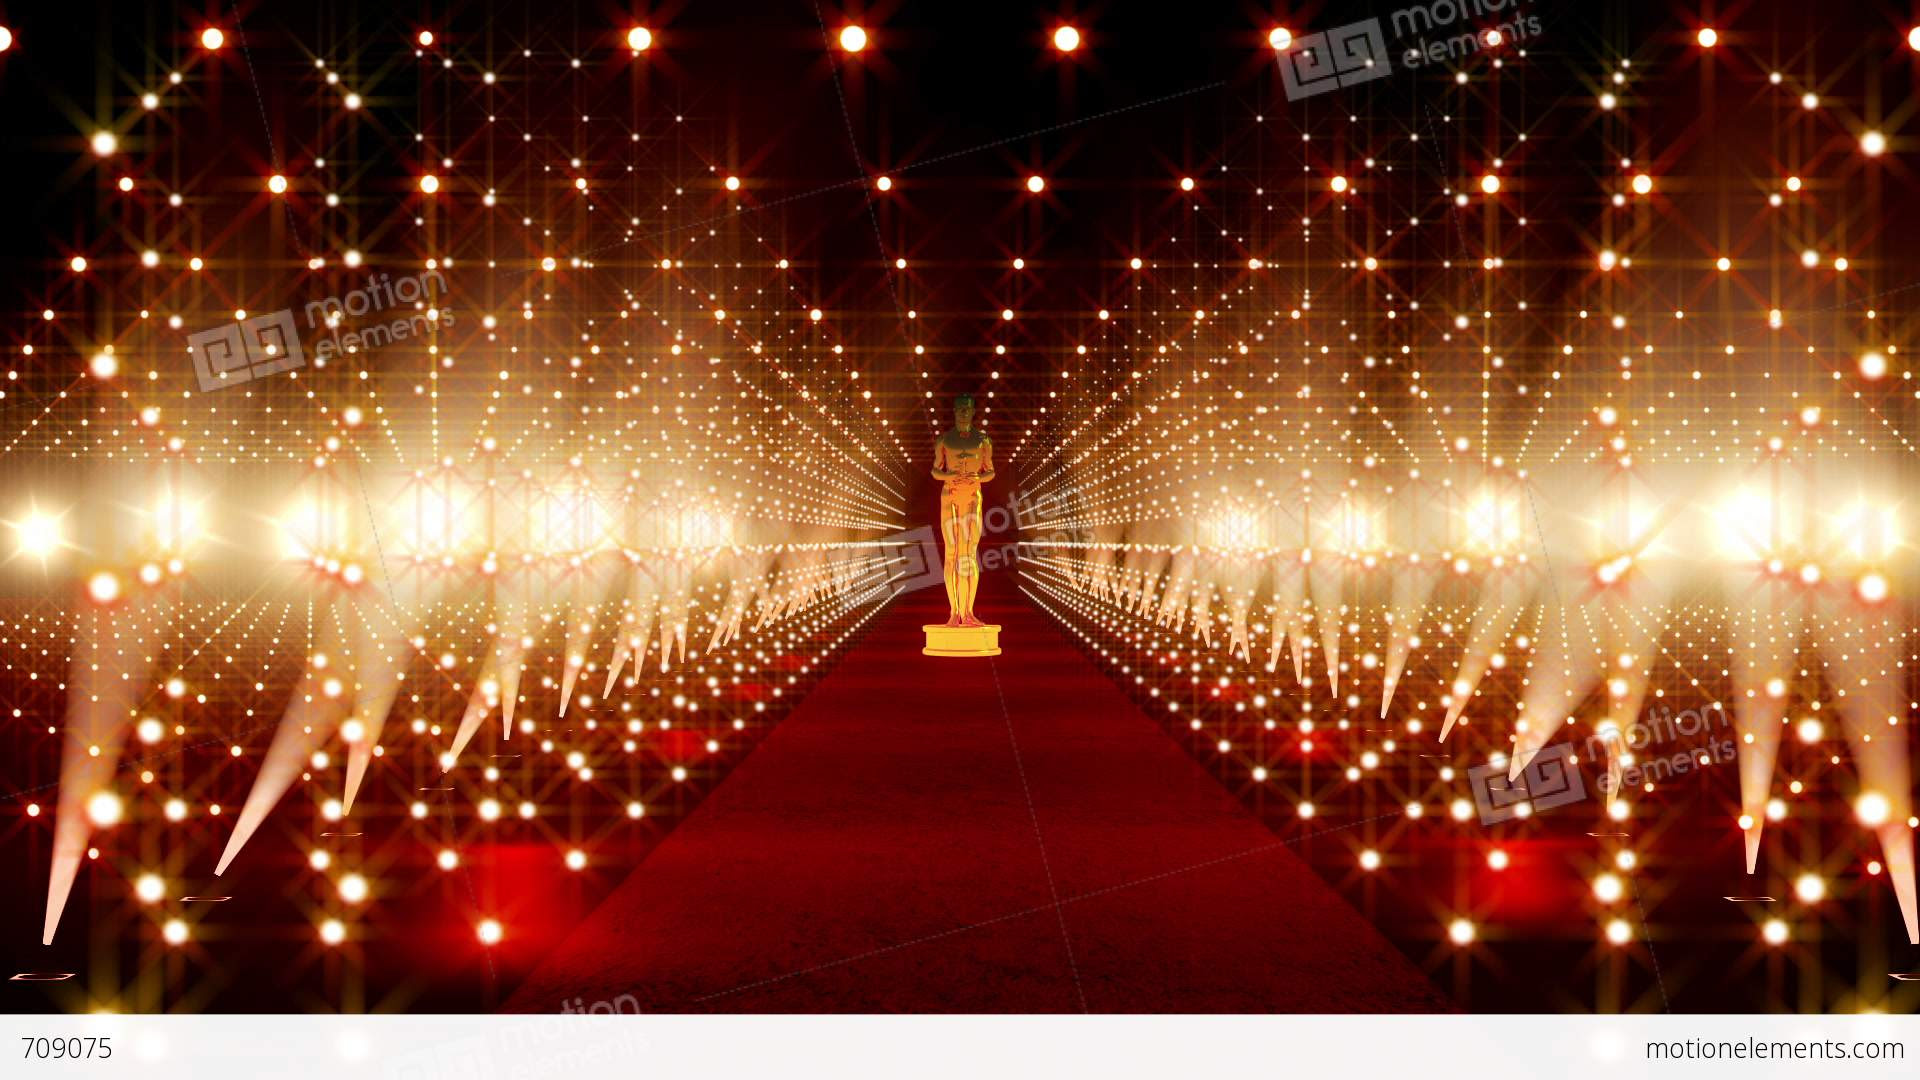 On The Red Carpet 14 Award Stock Animation | 709075